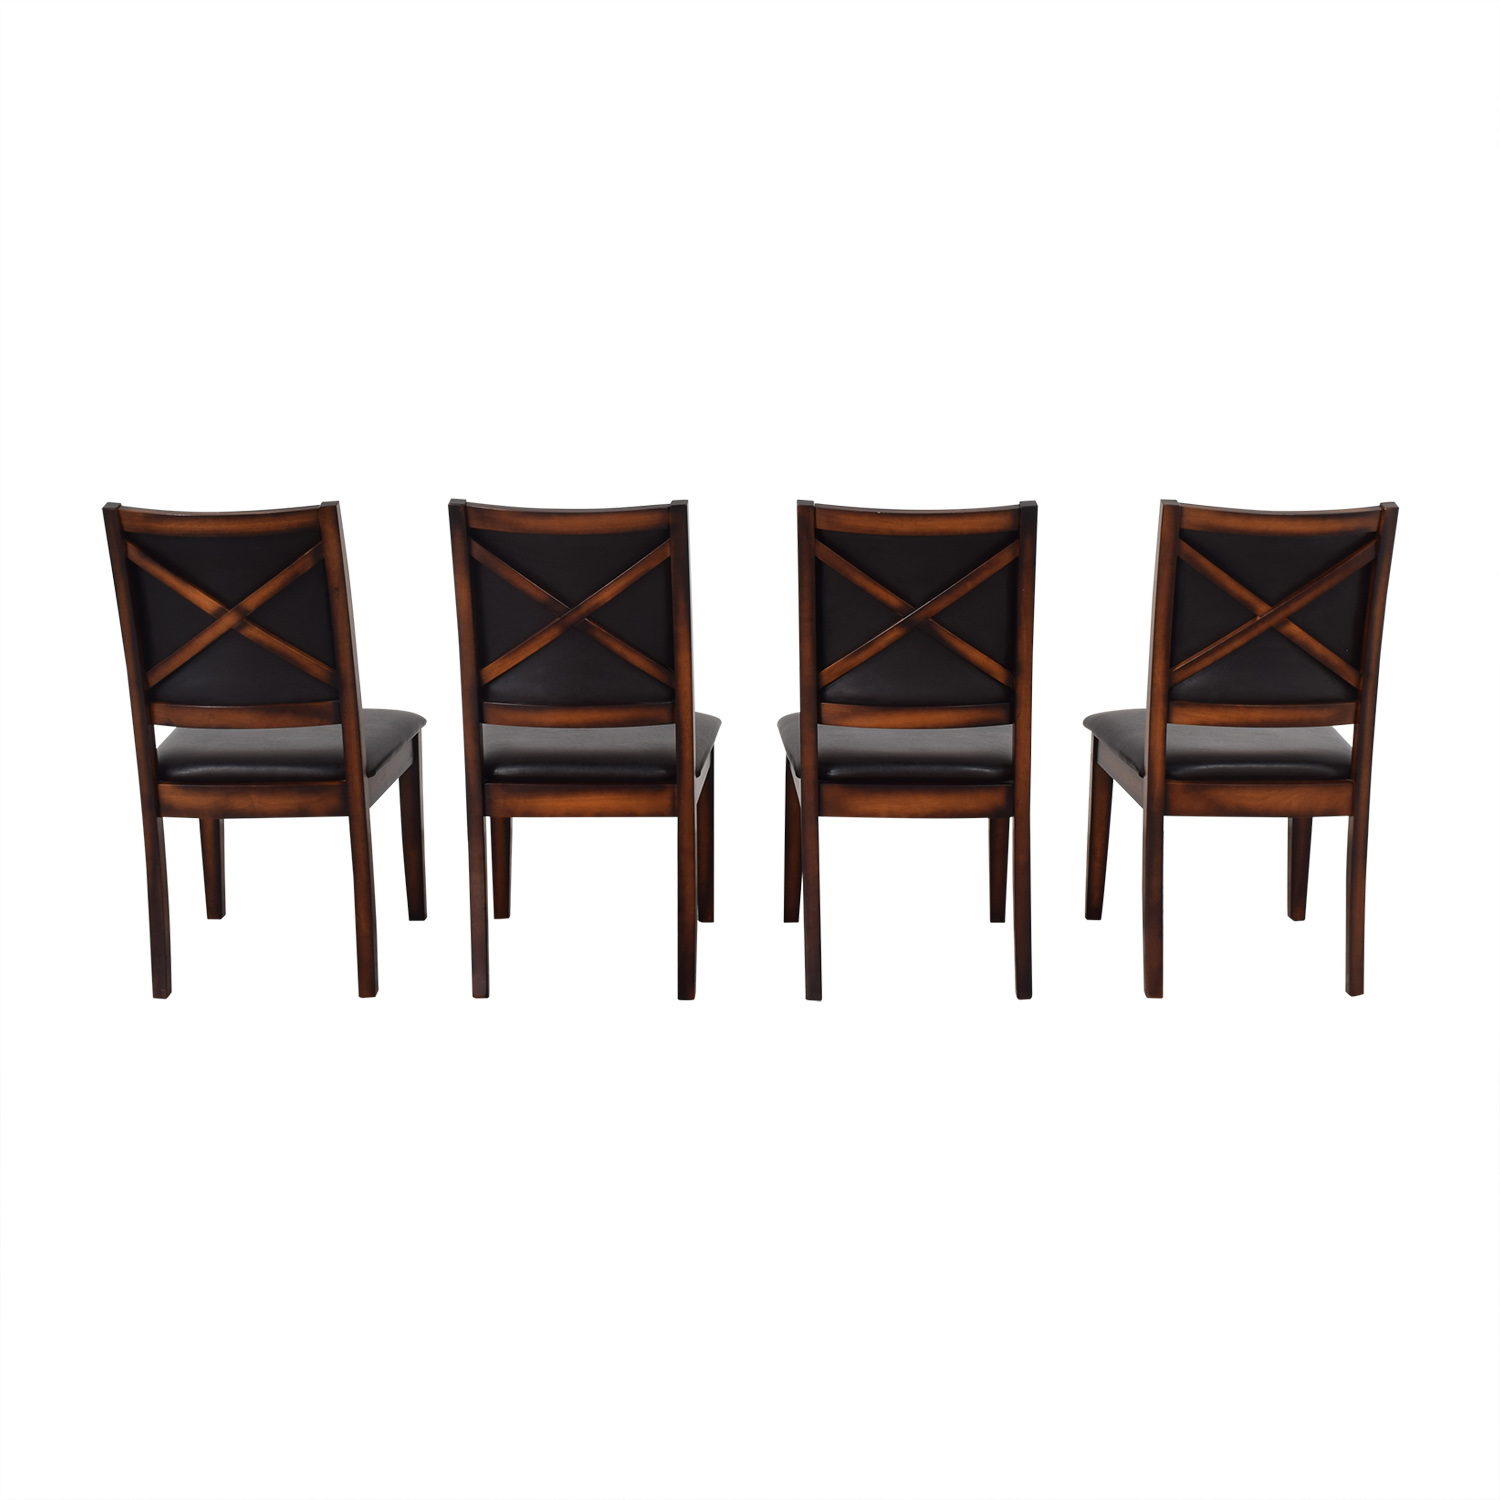 Raymour & Flanigan Raymour & Flanigan Upholstered Dining Chairs Dining Chairs